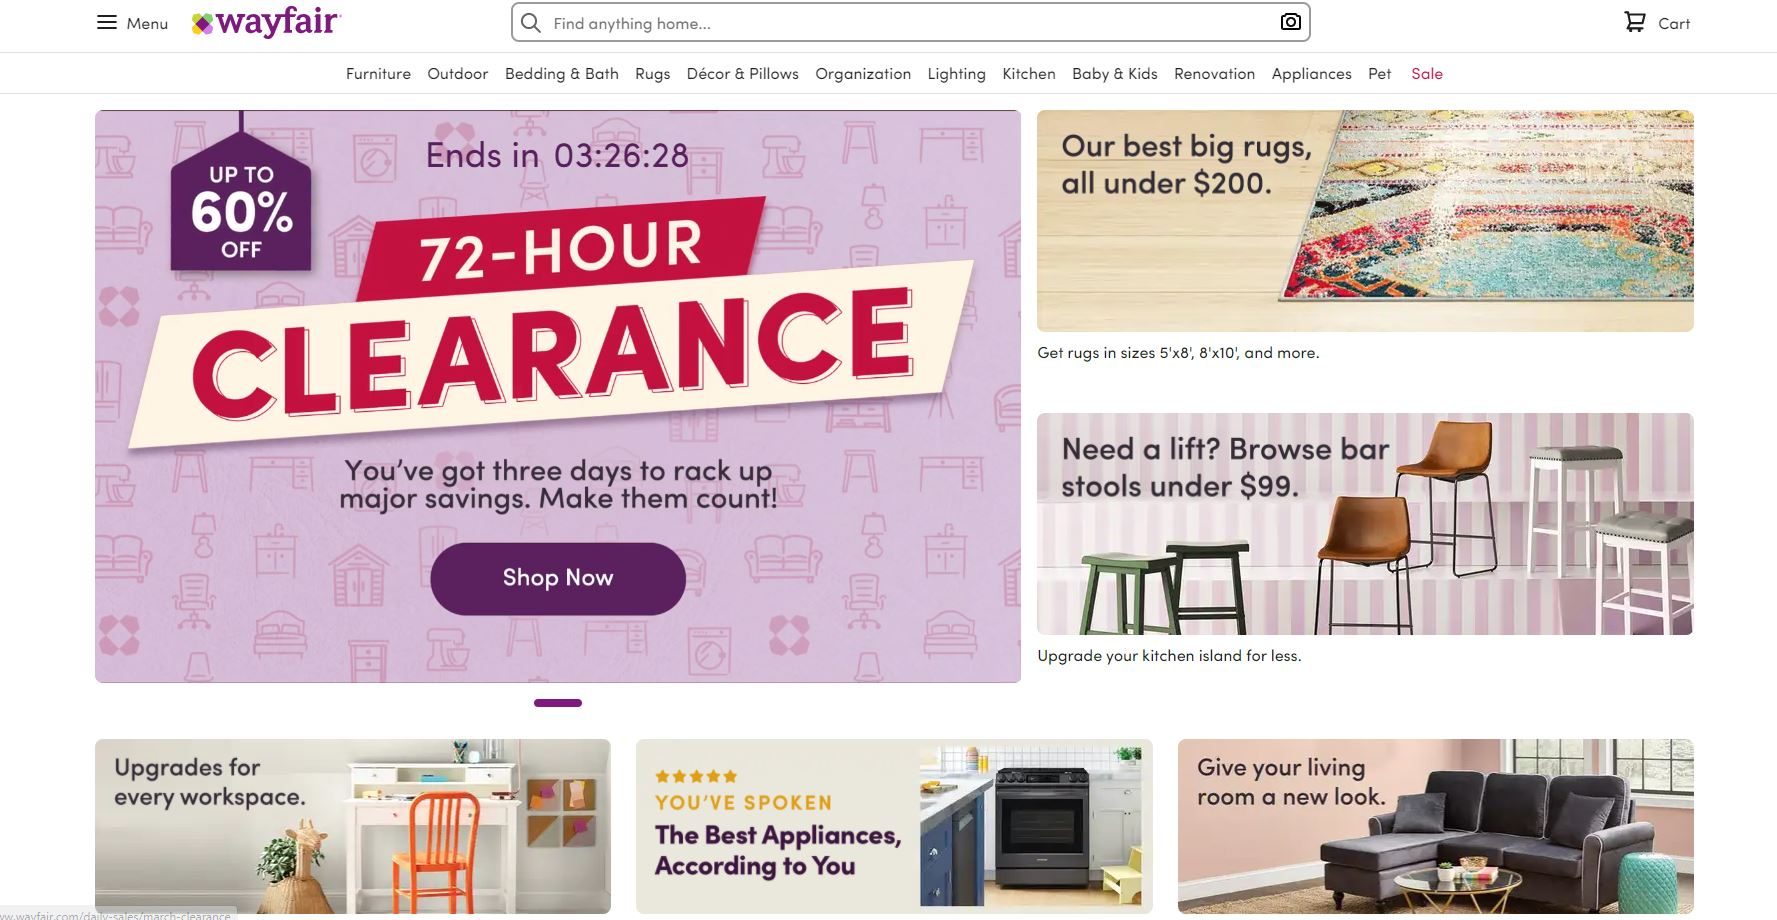 wayfair_marketplace_to_sell_furniture